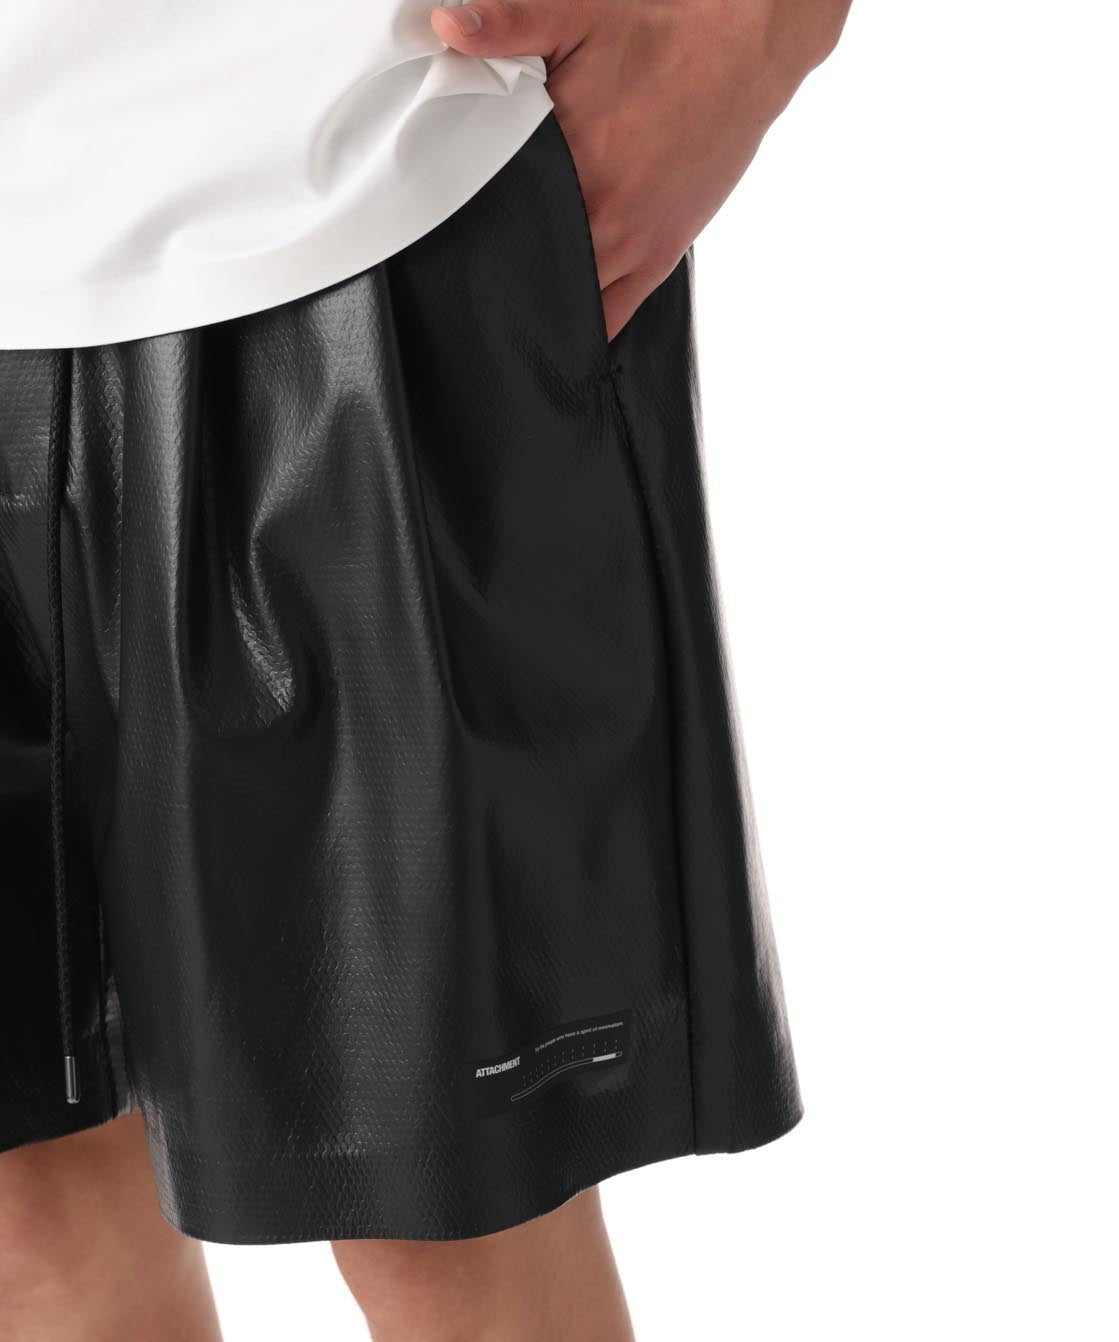 【ATTACHMENT】FILM BONDED MESH EASY SHORTS